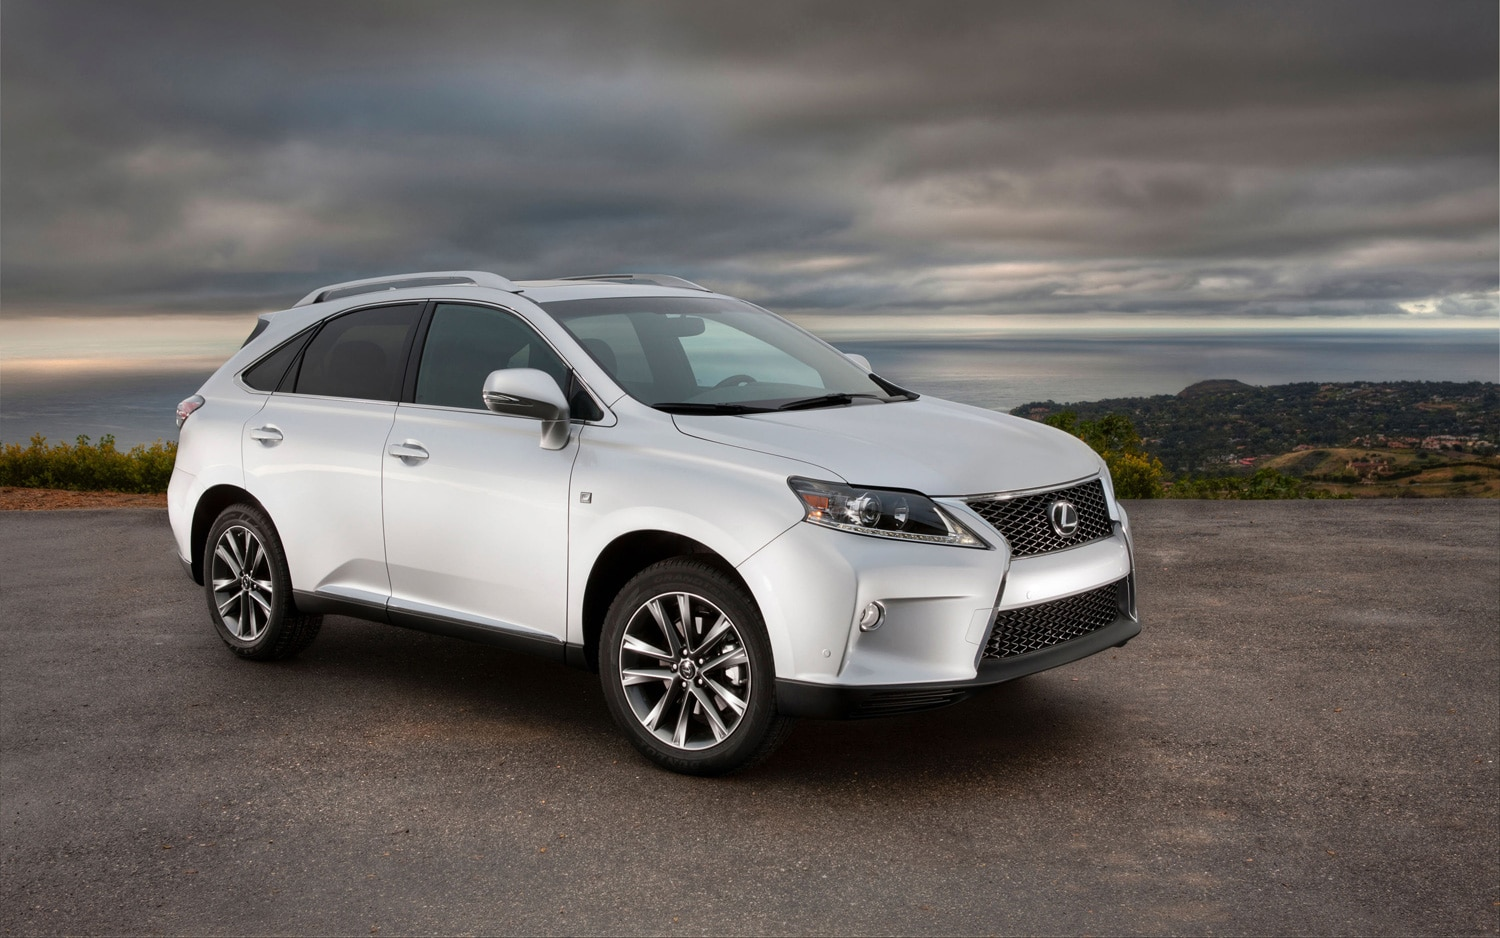 2013 Lexus RX 350 F SPORT Right Front 11